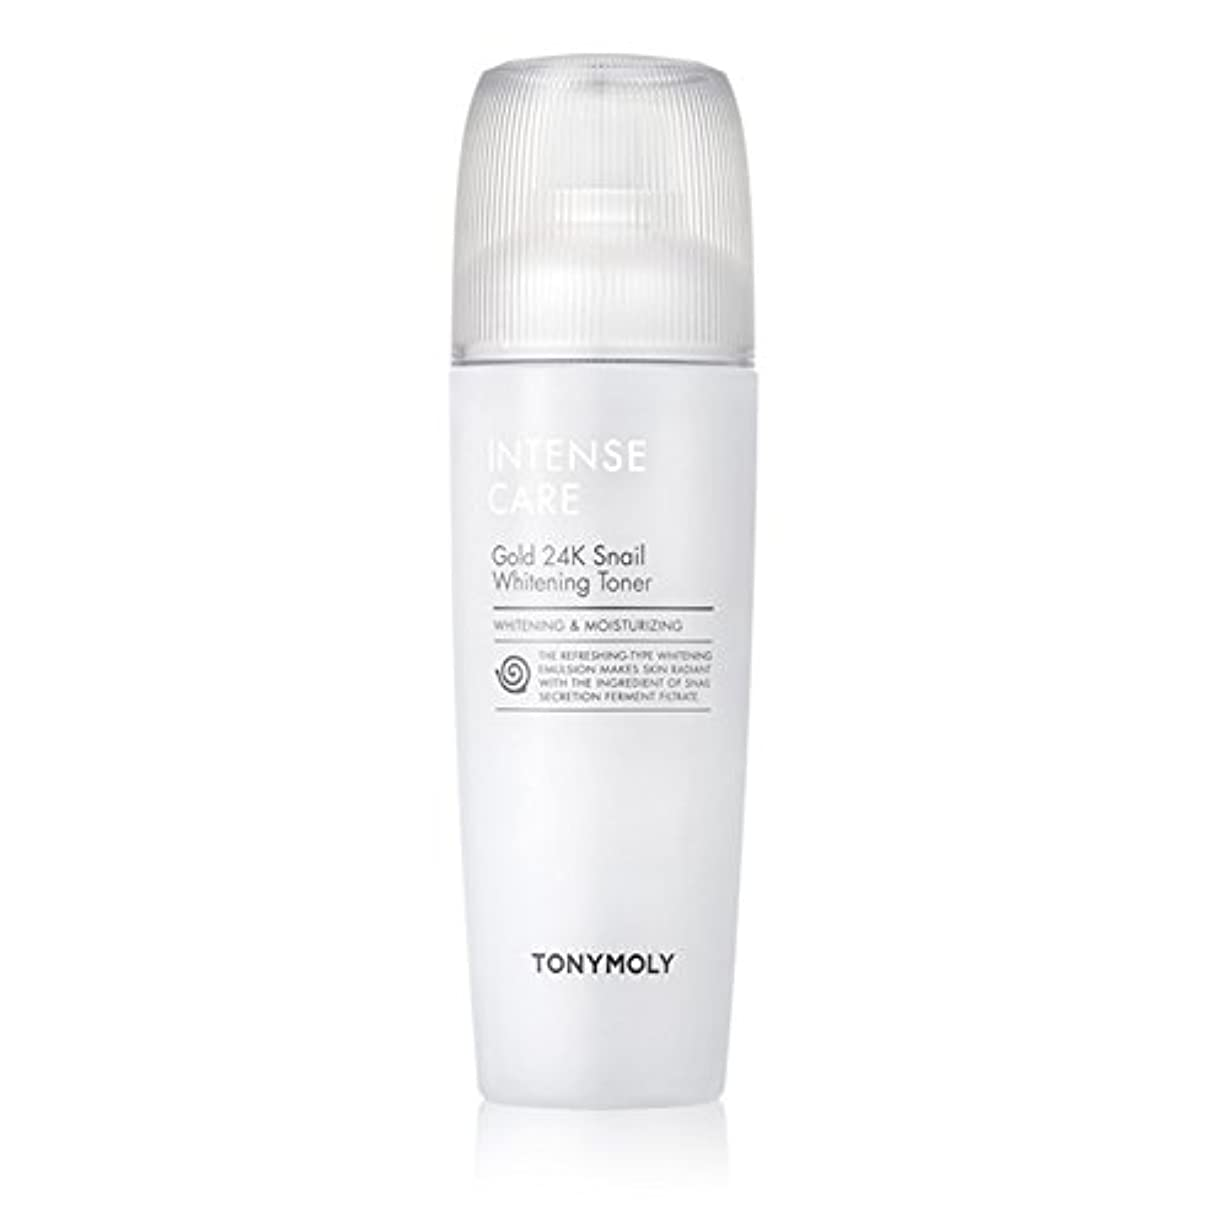 湿地しばしば建物トニモリー TONYMOLY Intense Care Gold 24K Snail Whitening Toner 130ml